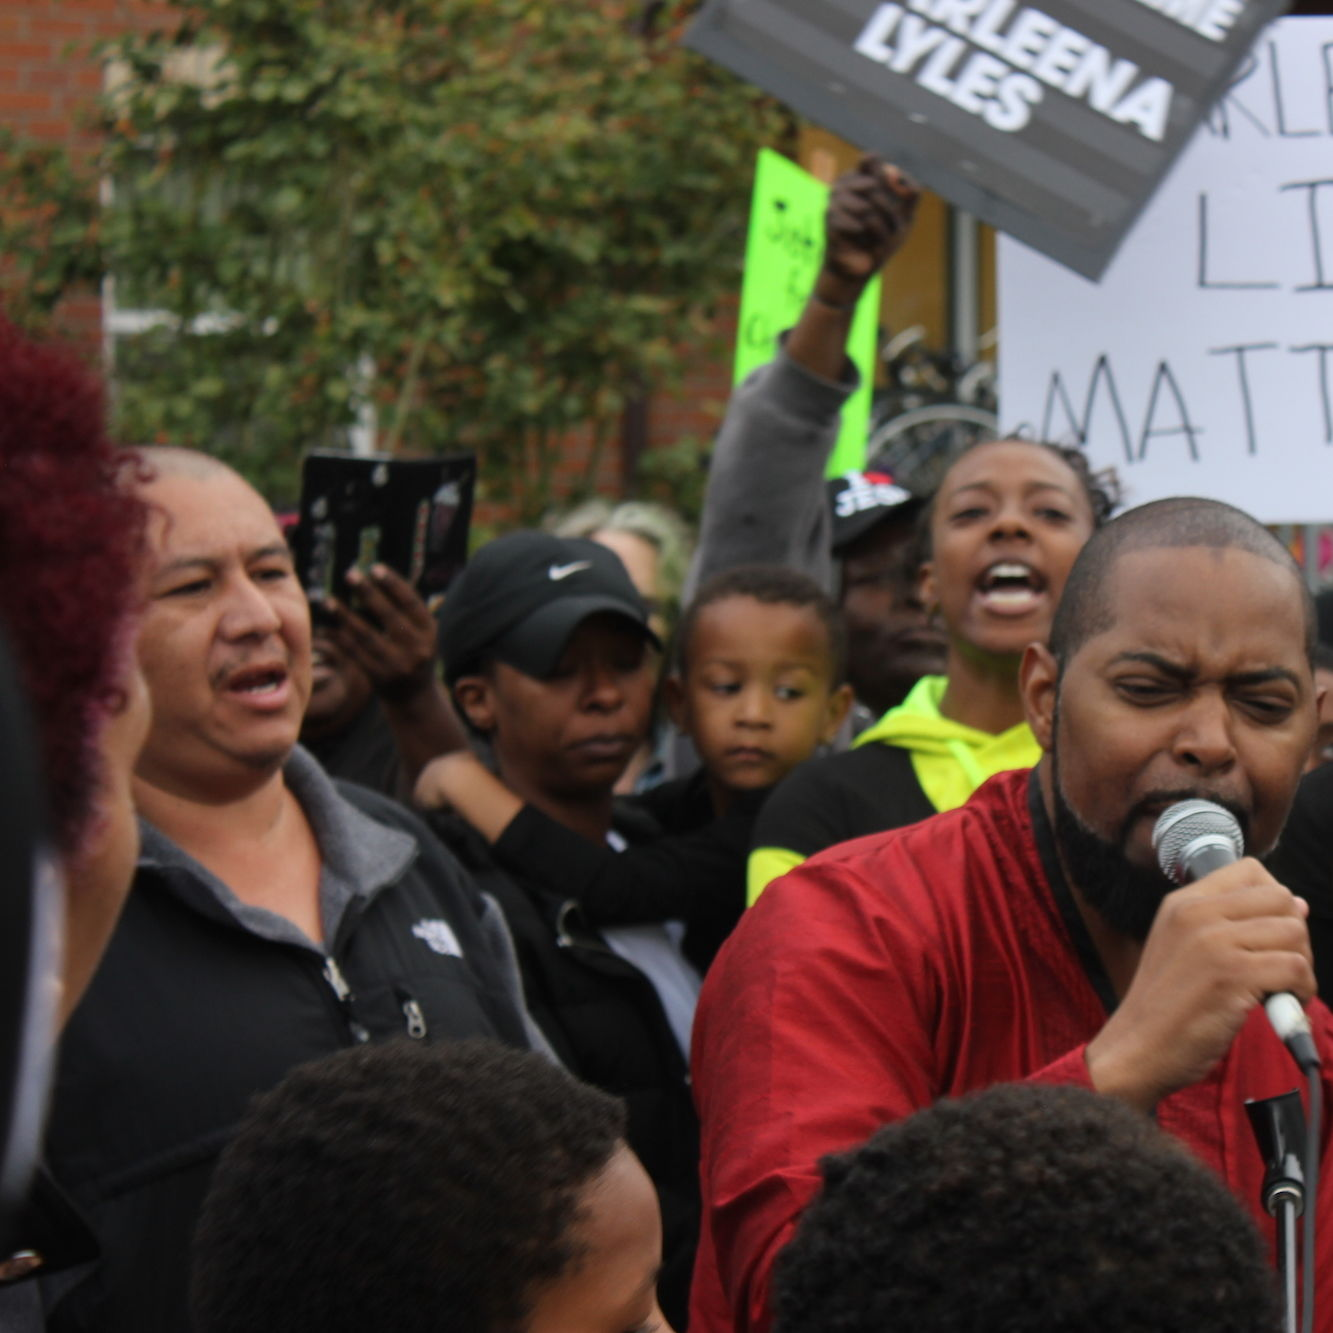 Andre taylor charleena lyles rally family behind brettler family place hayat ivjc2f